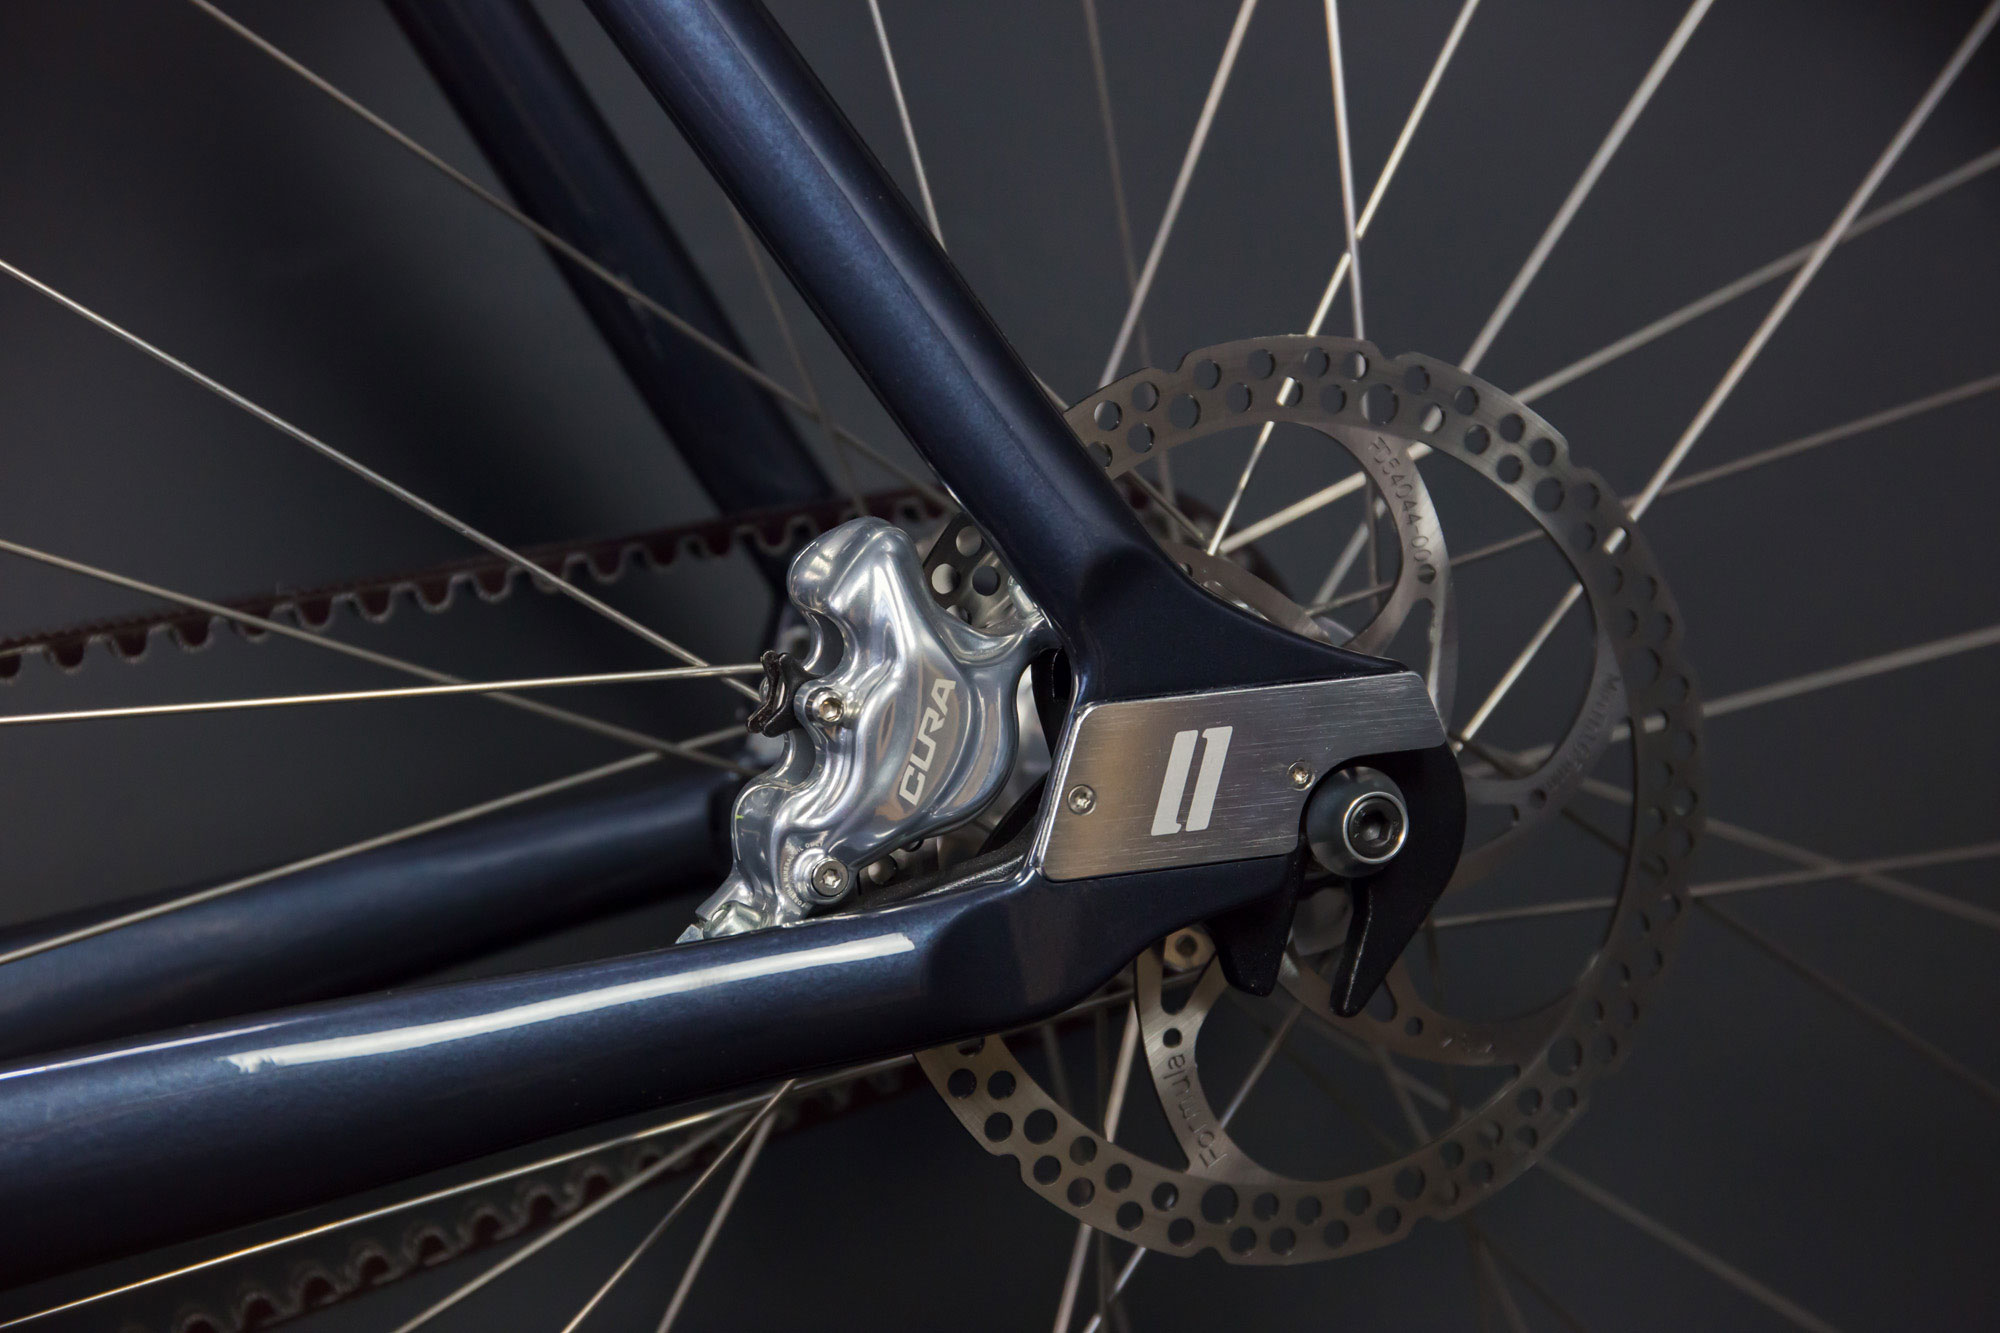 Slider belt tensioning system on our Wilhelm, including the integration of a disc brake caliper